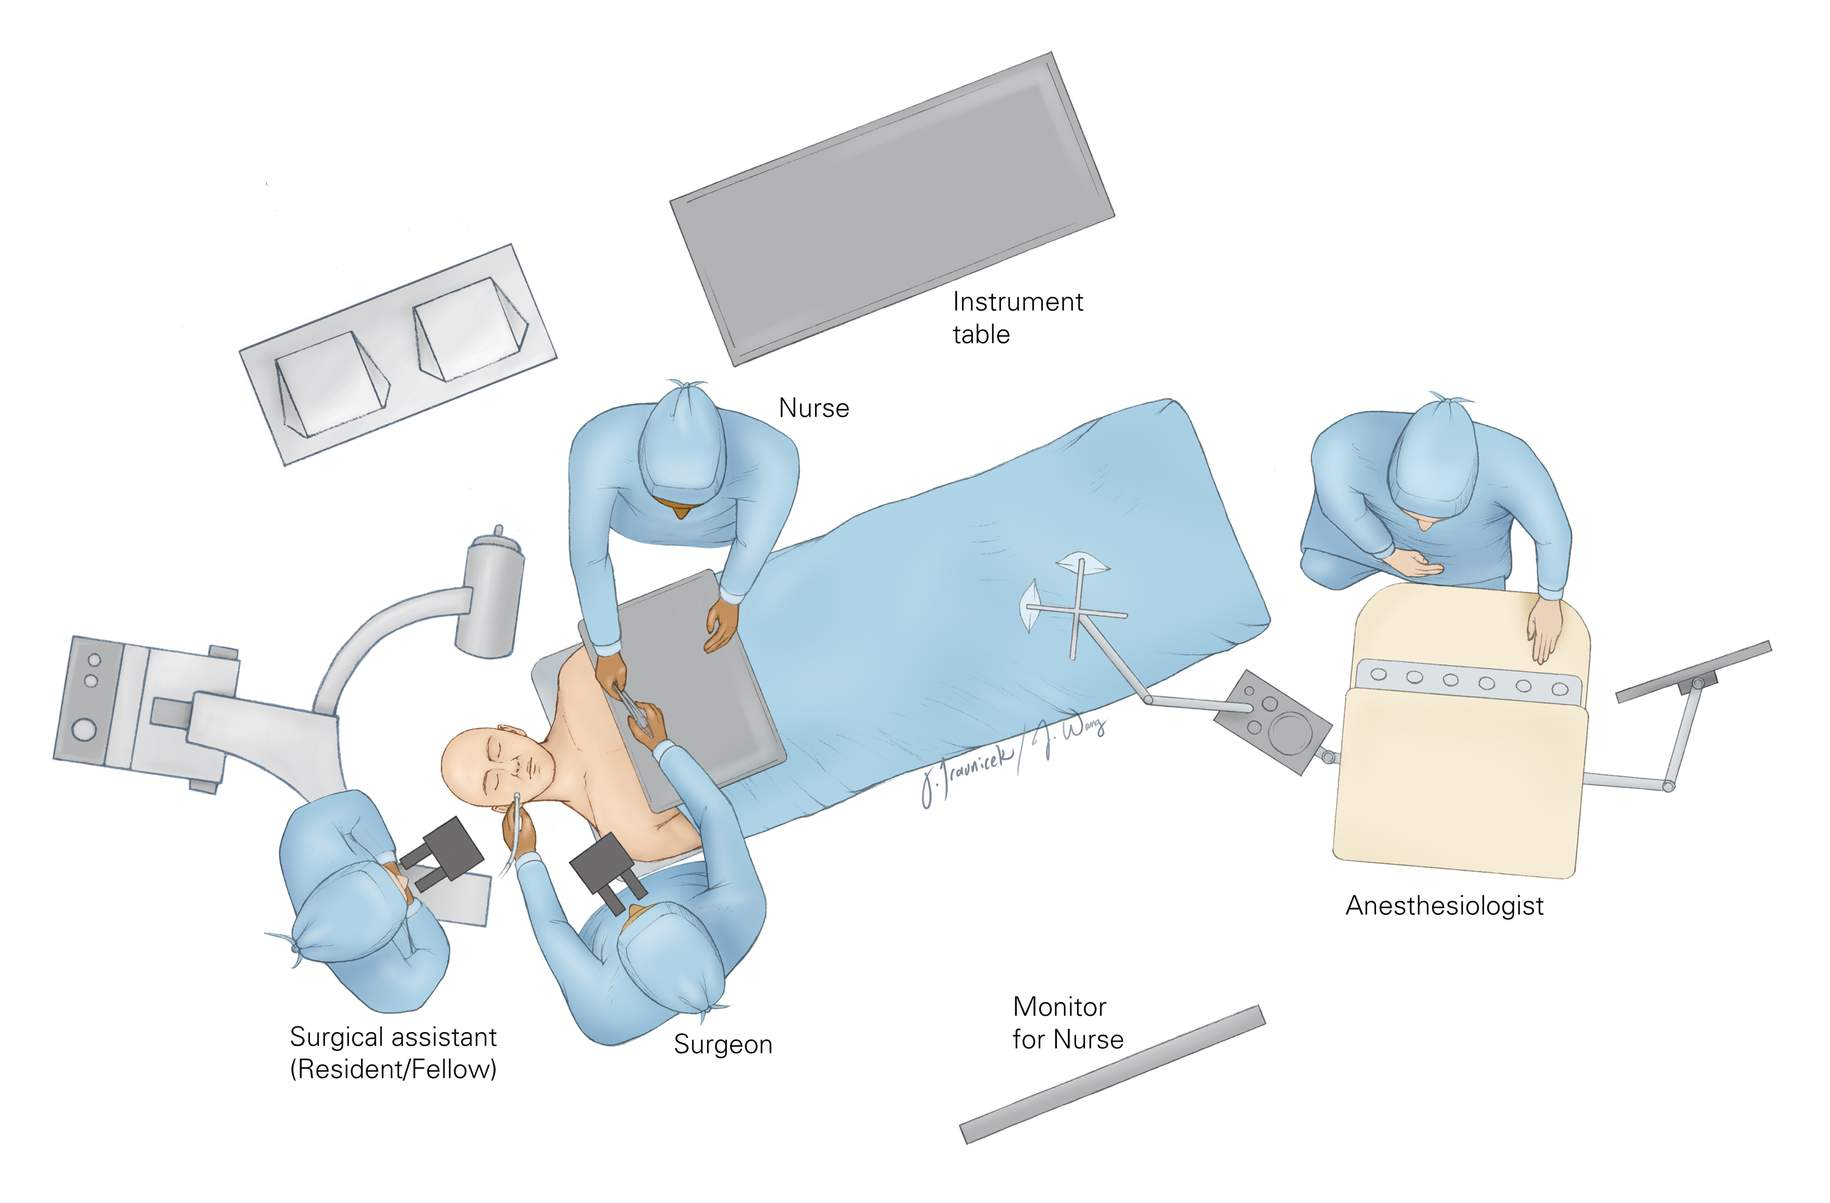 Figure 8: The setup of the operating room depends on the handedness of the surgeon because the surgical technician and the operator are situated across from each other. A right-handed operator is able to readily interact with the surgical technician for the transfer of instruments. The neuronavigation system or fluoroscope is also at the head of the table, across from the surgeon. The anesthesiologist is placed at the foot of the table.